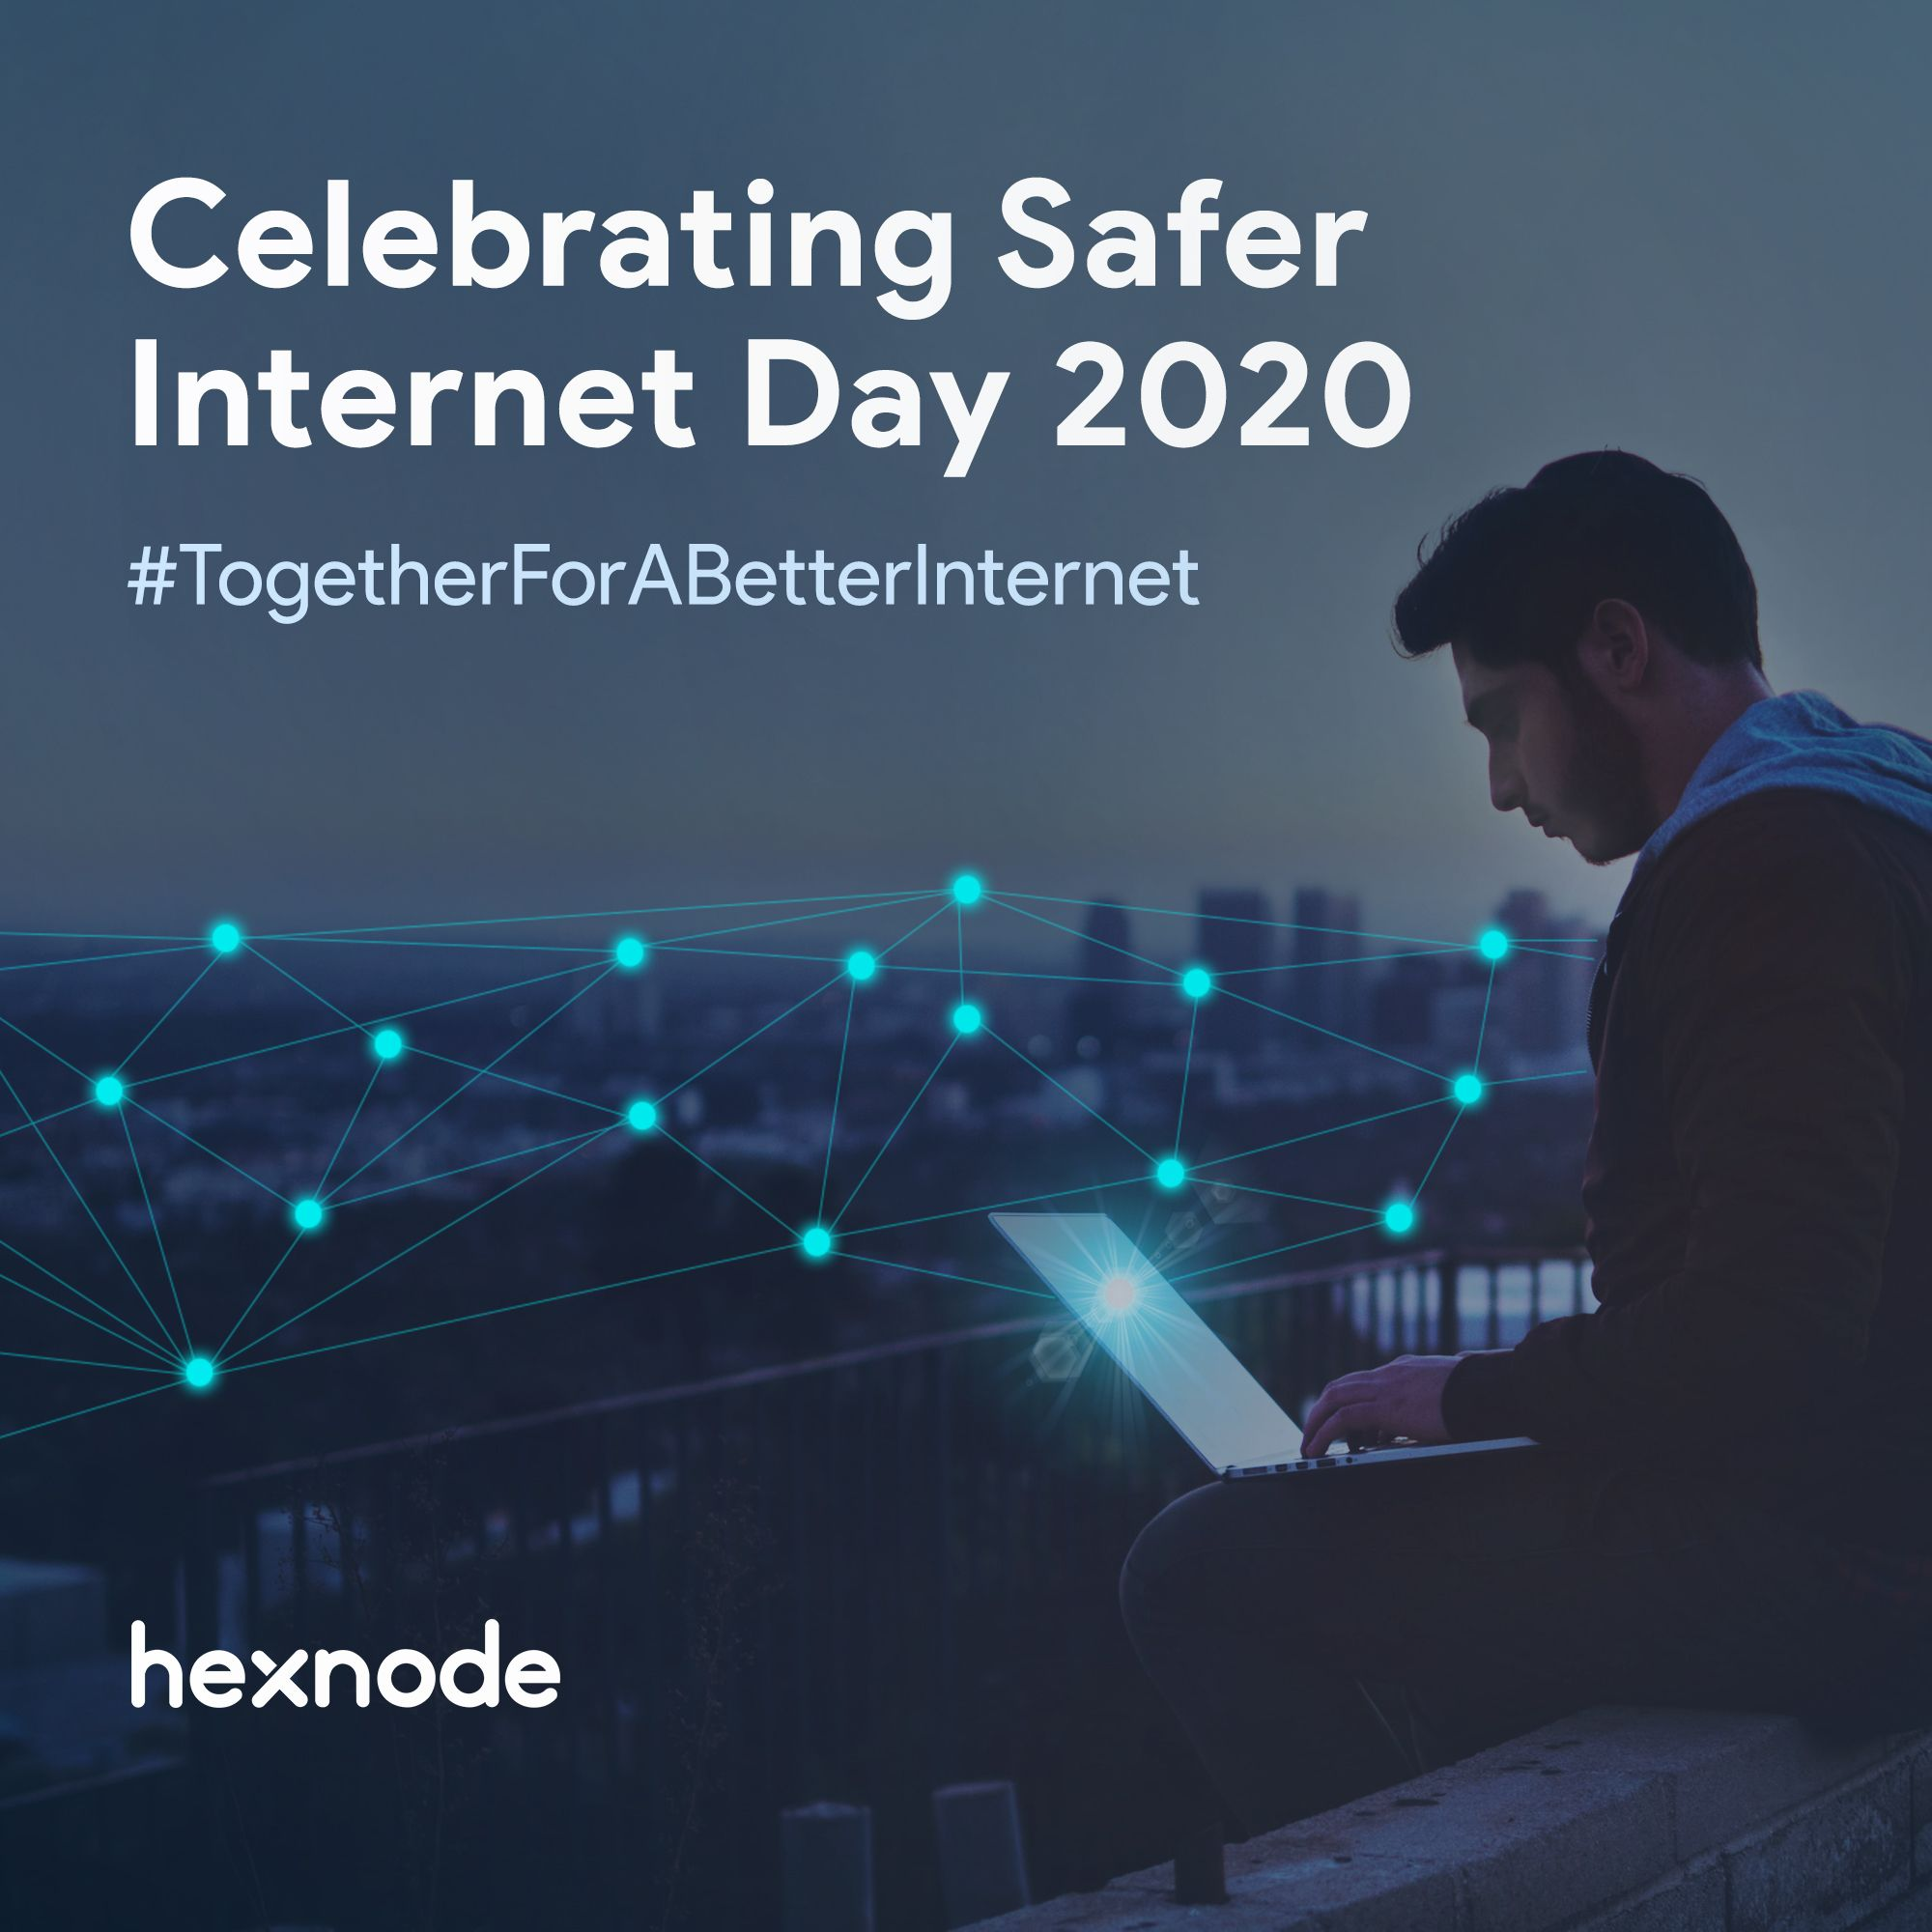 Happy Safer Internet Day Let Us Join Hands To Build A Safer And Better Internet For Our Young Generation Saferinternetday Togetherforabetterintern In 2020